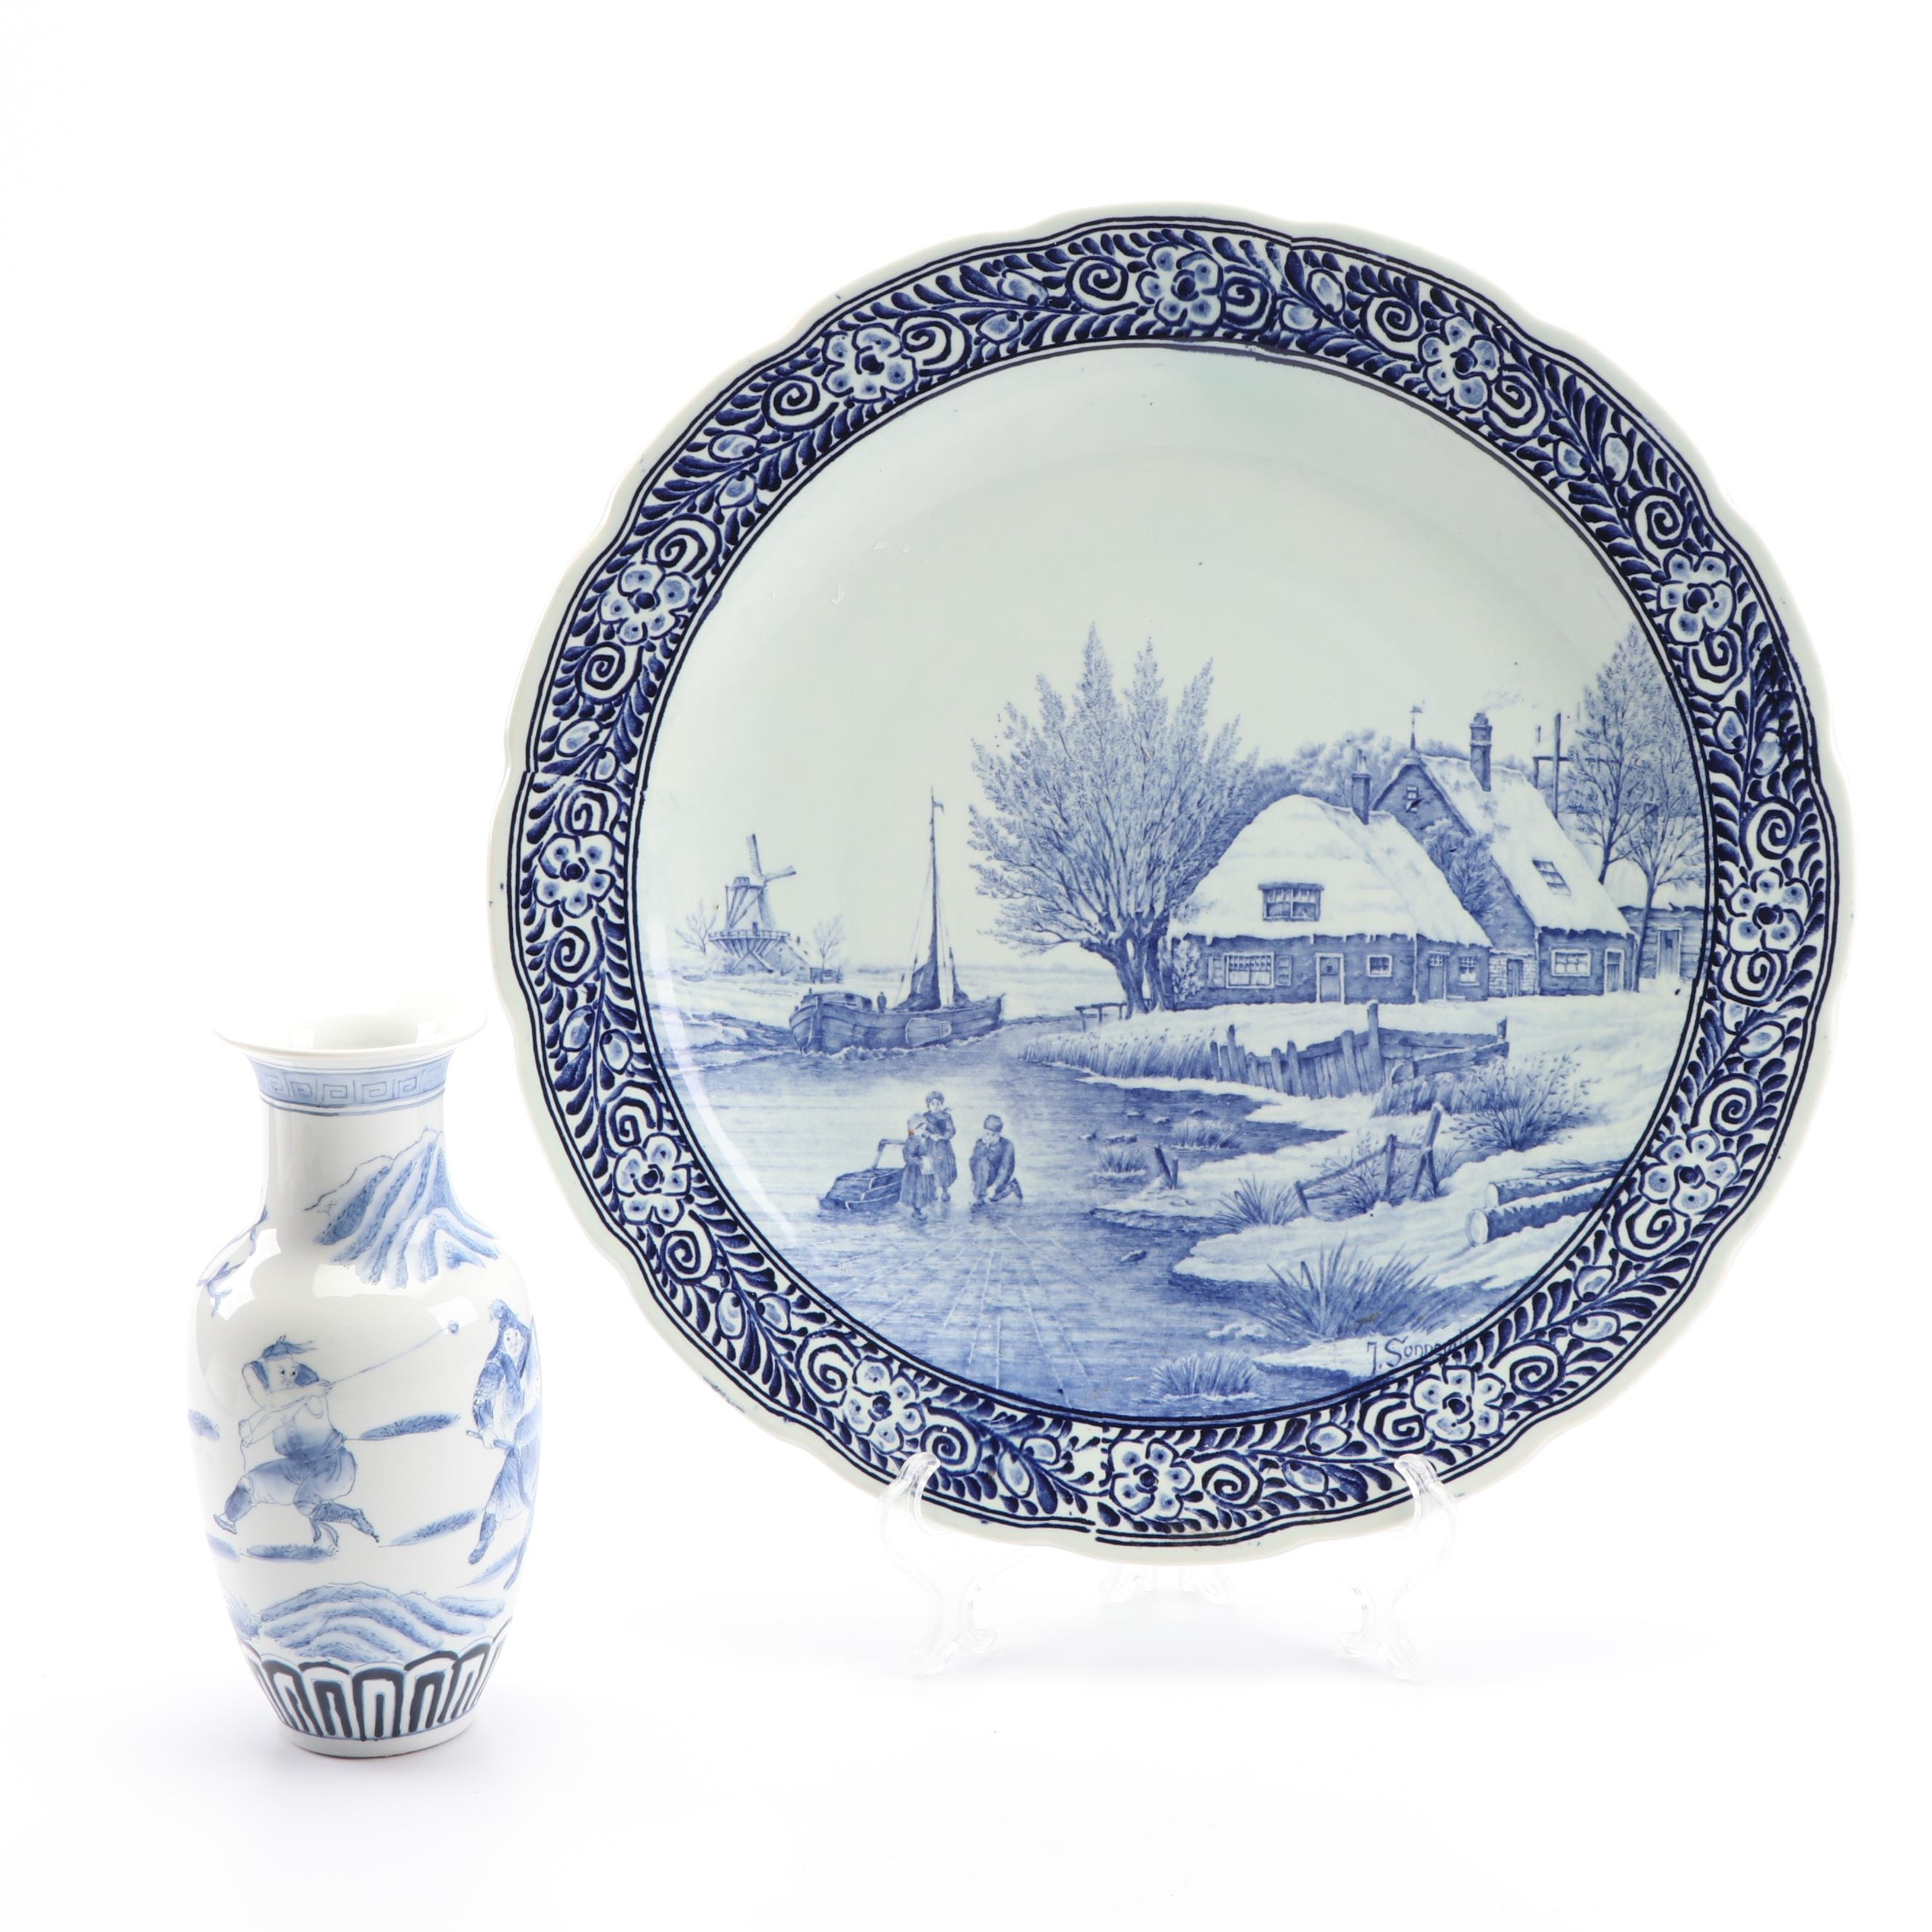 Royal Sphinx Delfts Decorative Plate and Chinese Vase